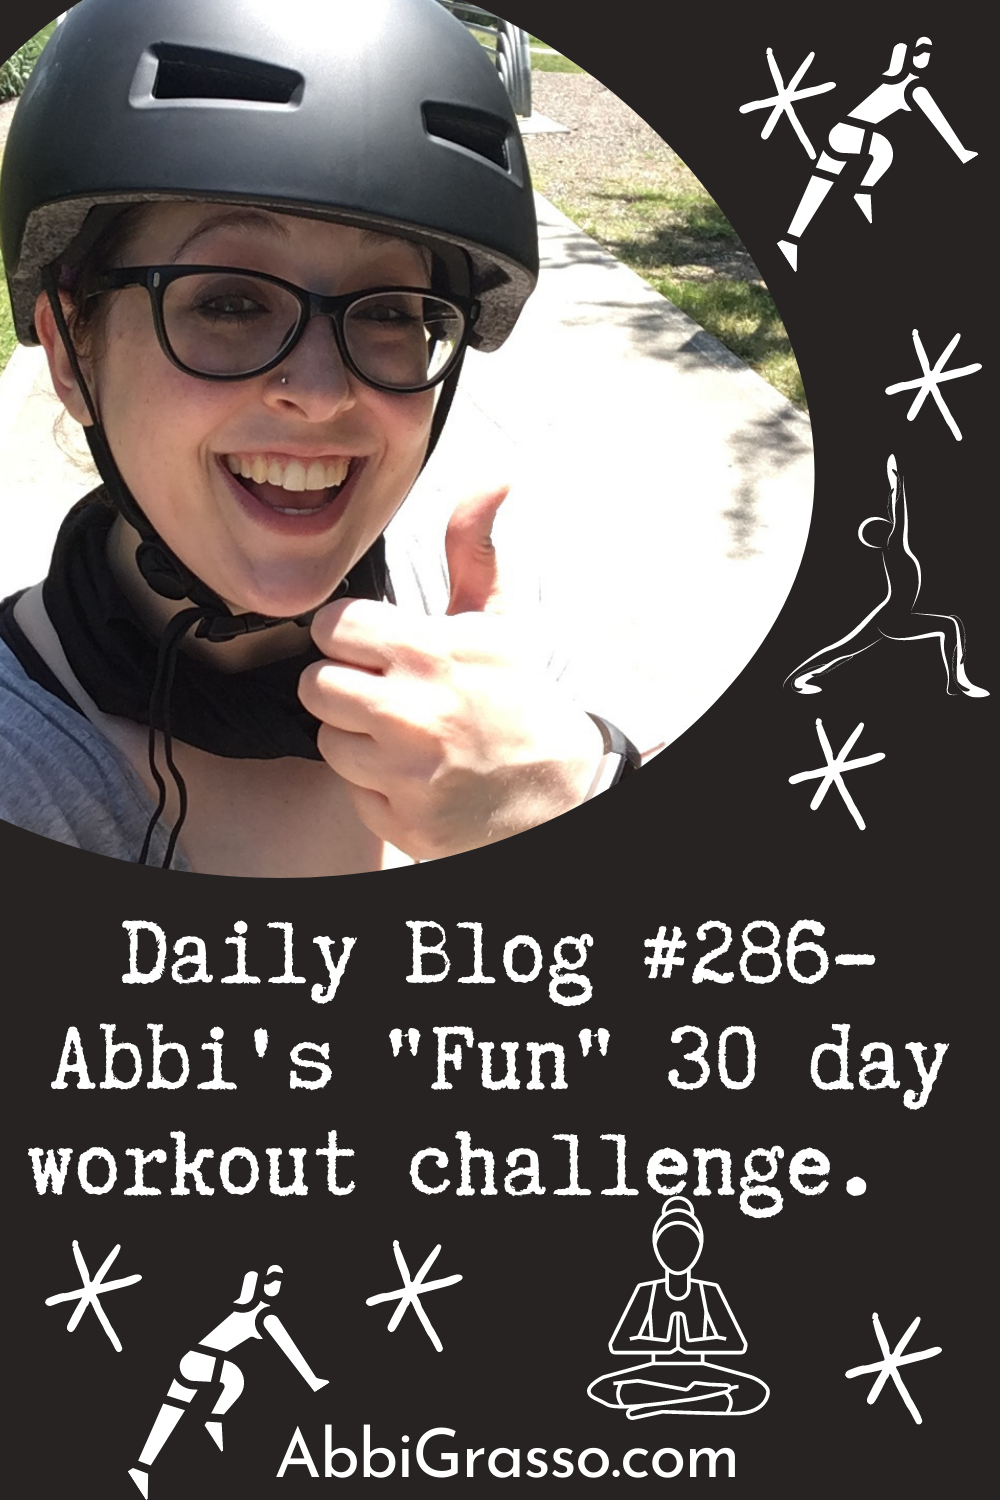 "Daily Blog #286: Abbi's ""fun"" 30 day workout challenge"